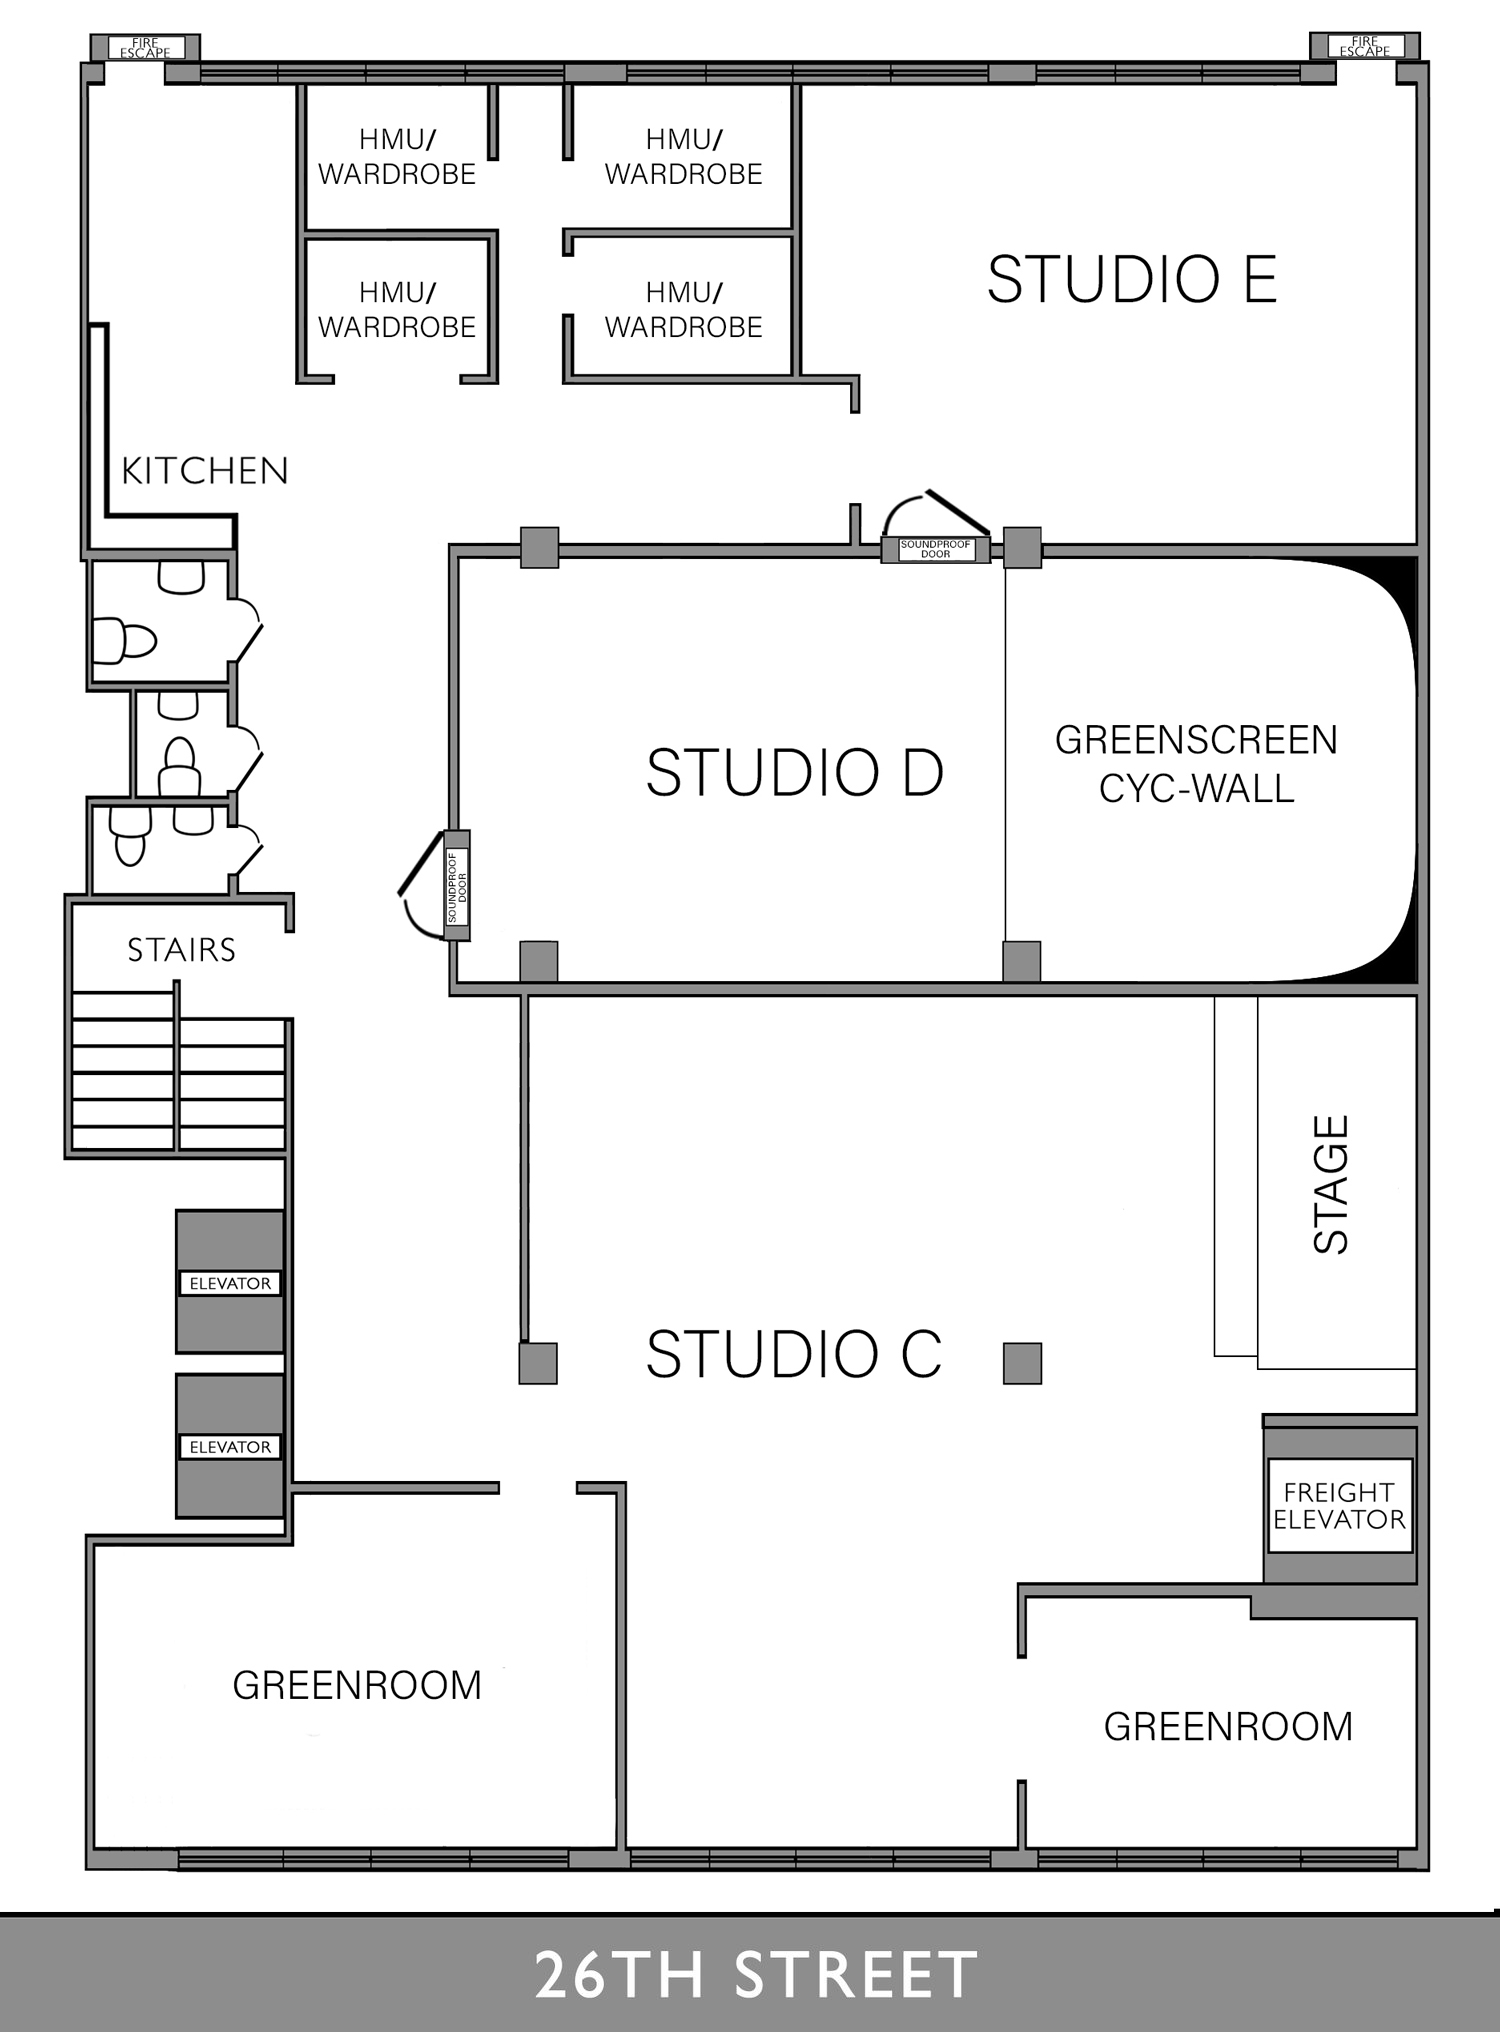 4th FL_Floor plan.jpg